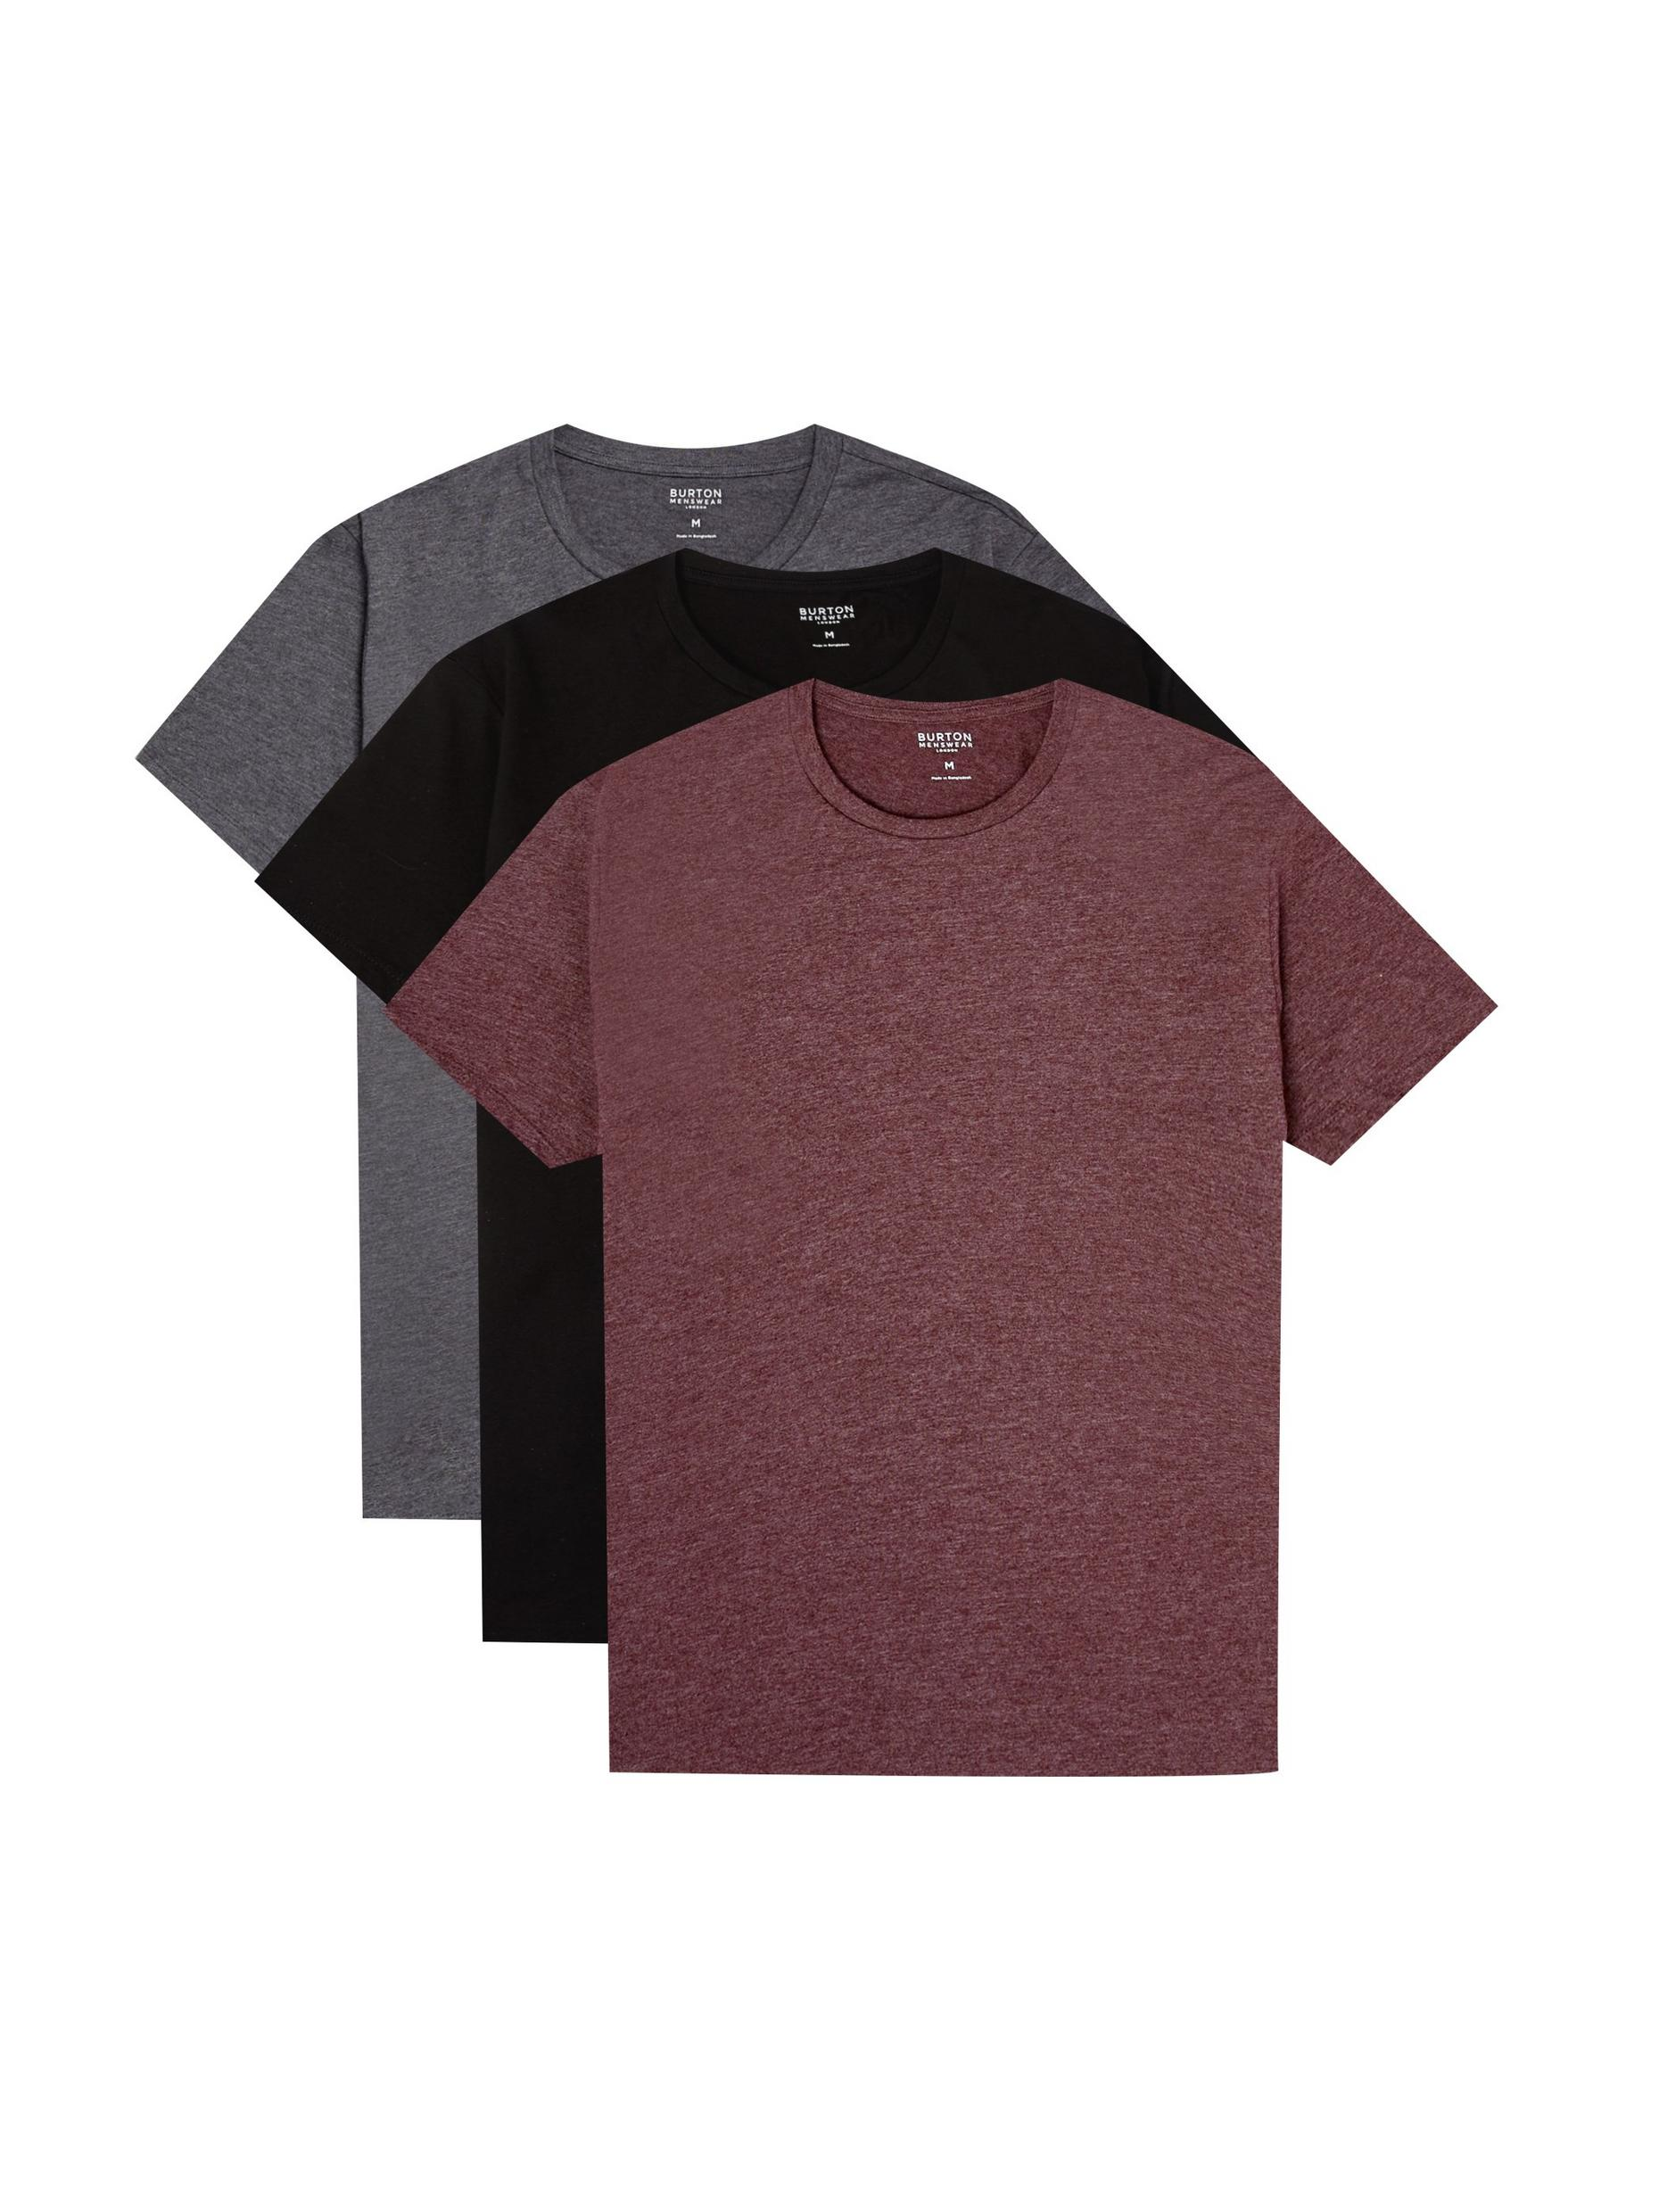 3 Pack Black; Charcoal; Burgundy Organic T-Shirt